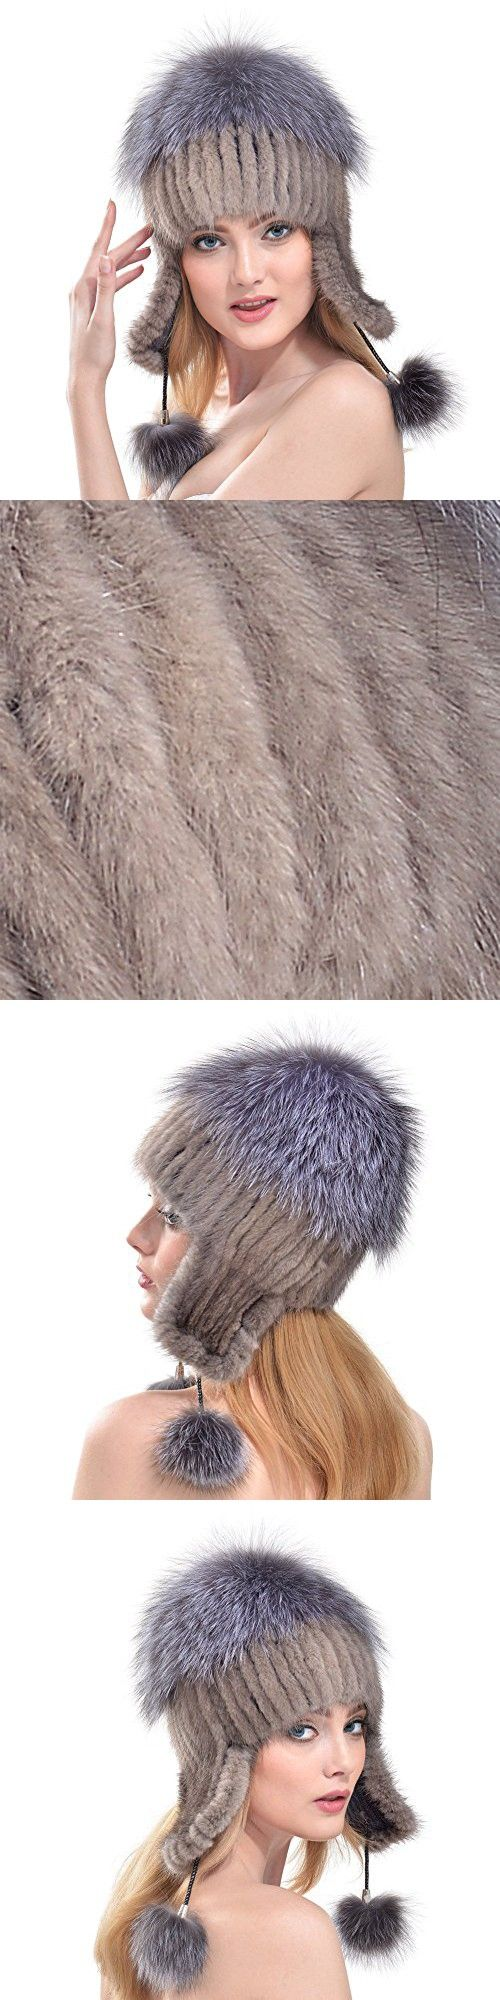 Queenfur Real Knit Mink Fur Hat Silver Fox Fur Pom Ear Protection Cap Fur Beanie (Grey)